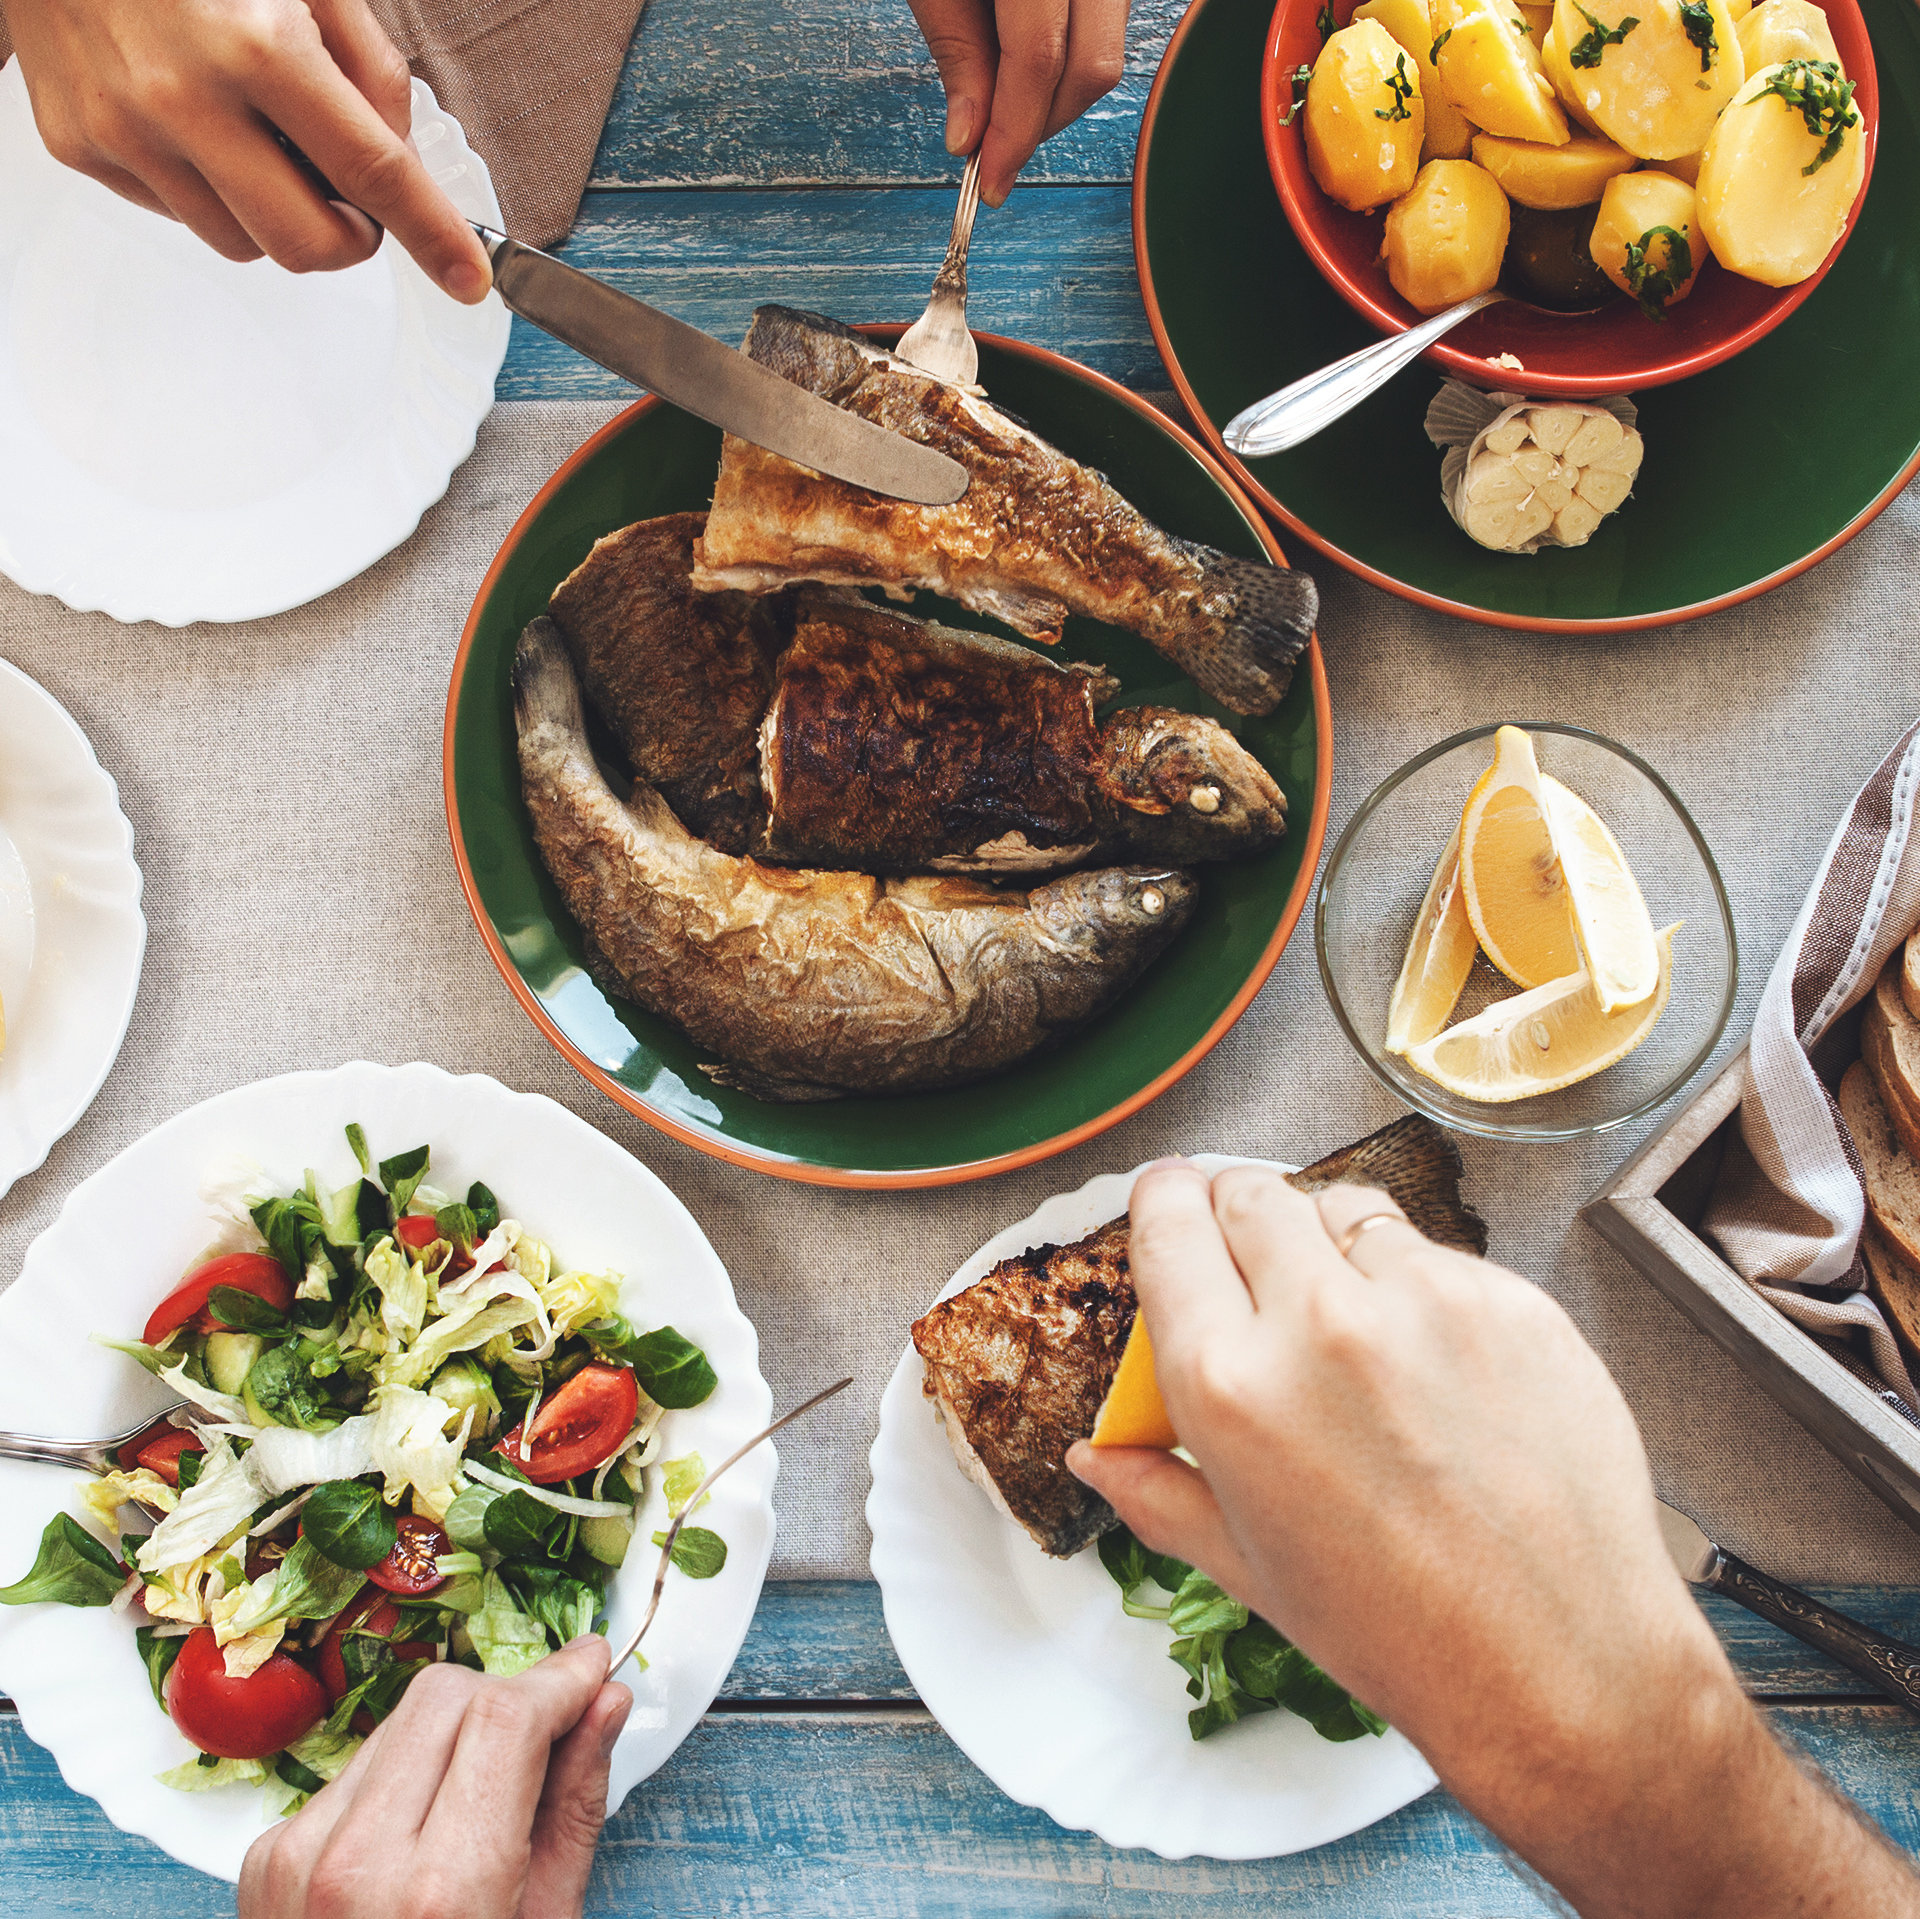 Mediterranean Diet Improves Memory And Keeps Brain Young